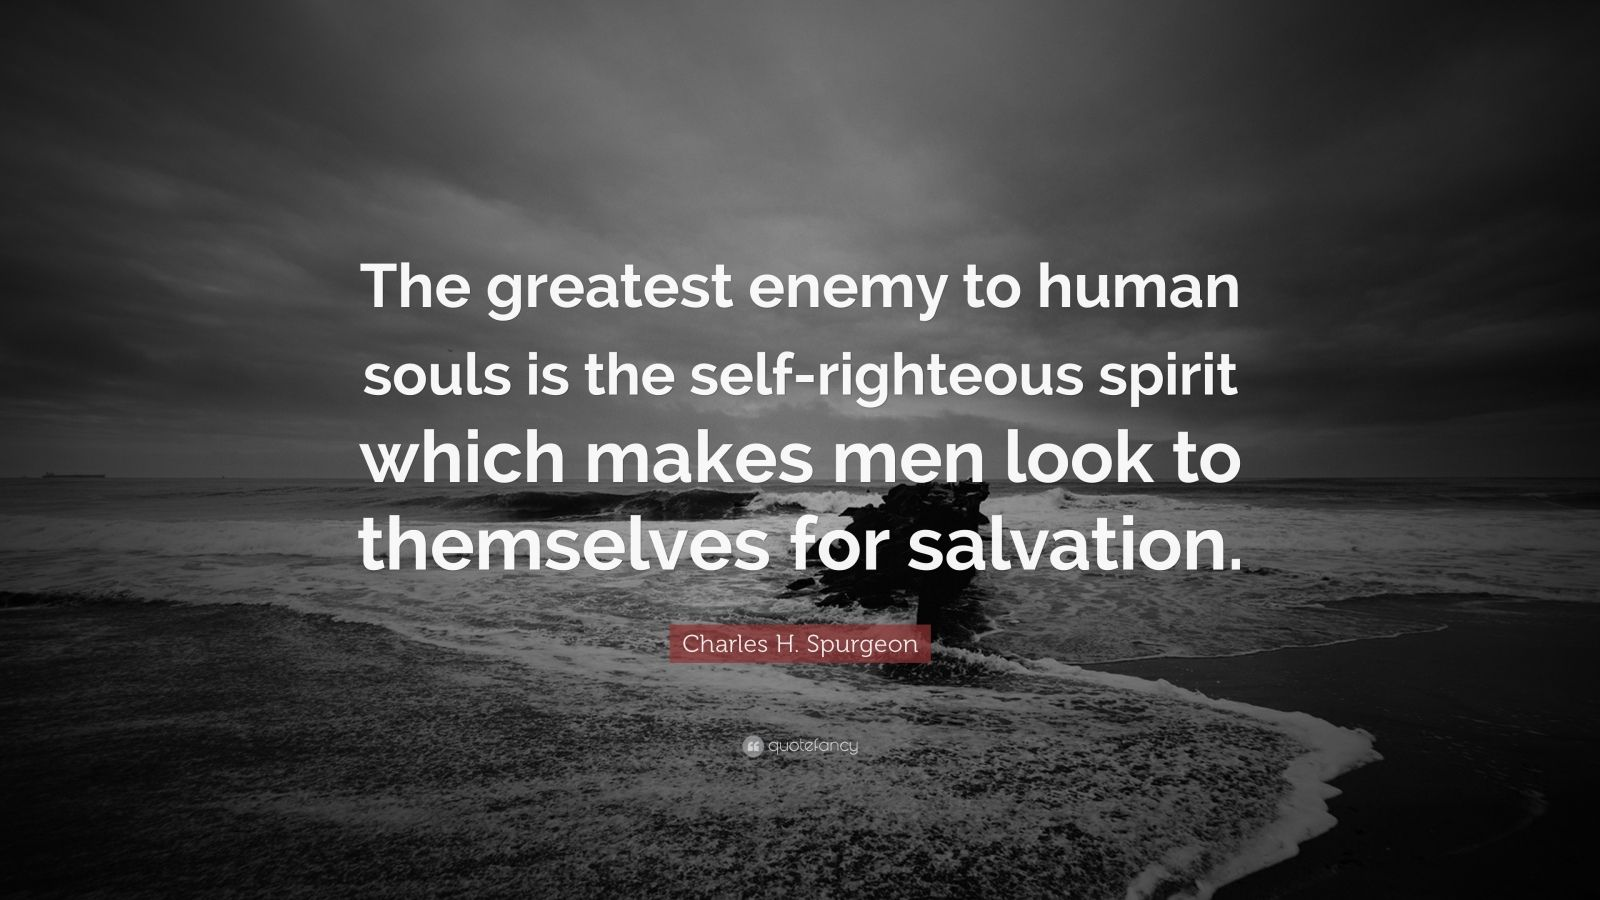 Men Quote Wallpaper Charles H Spurgeon Quote The Greatest Enemy To Human